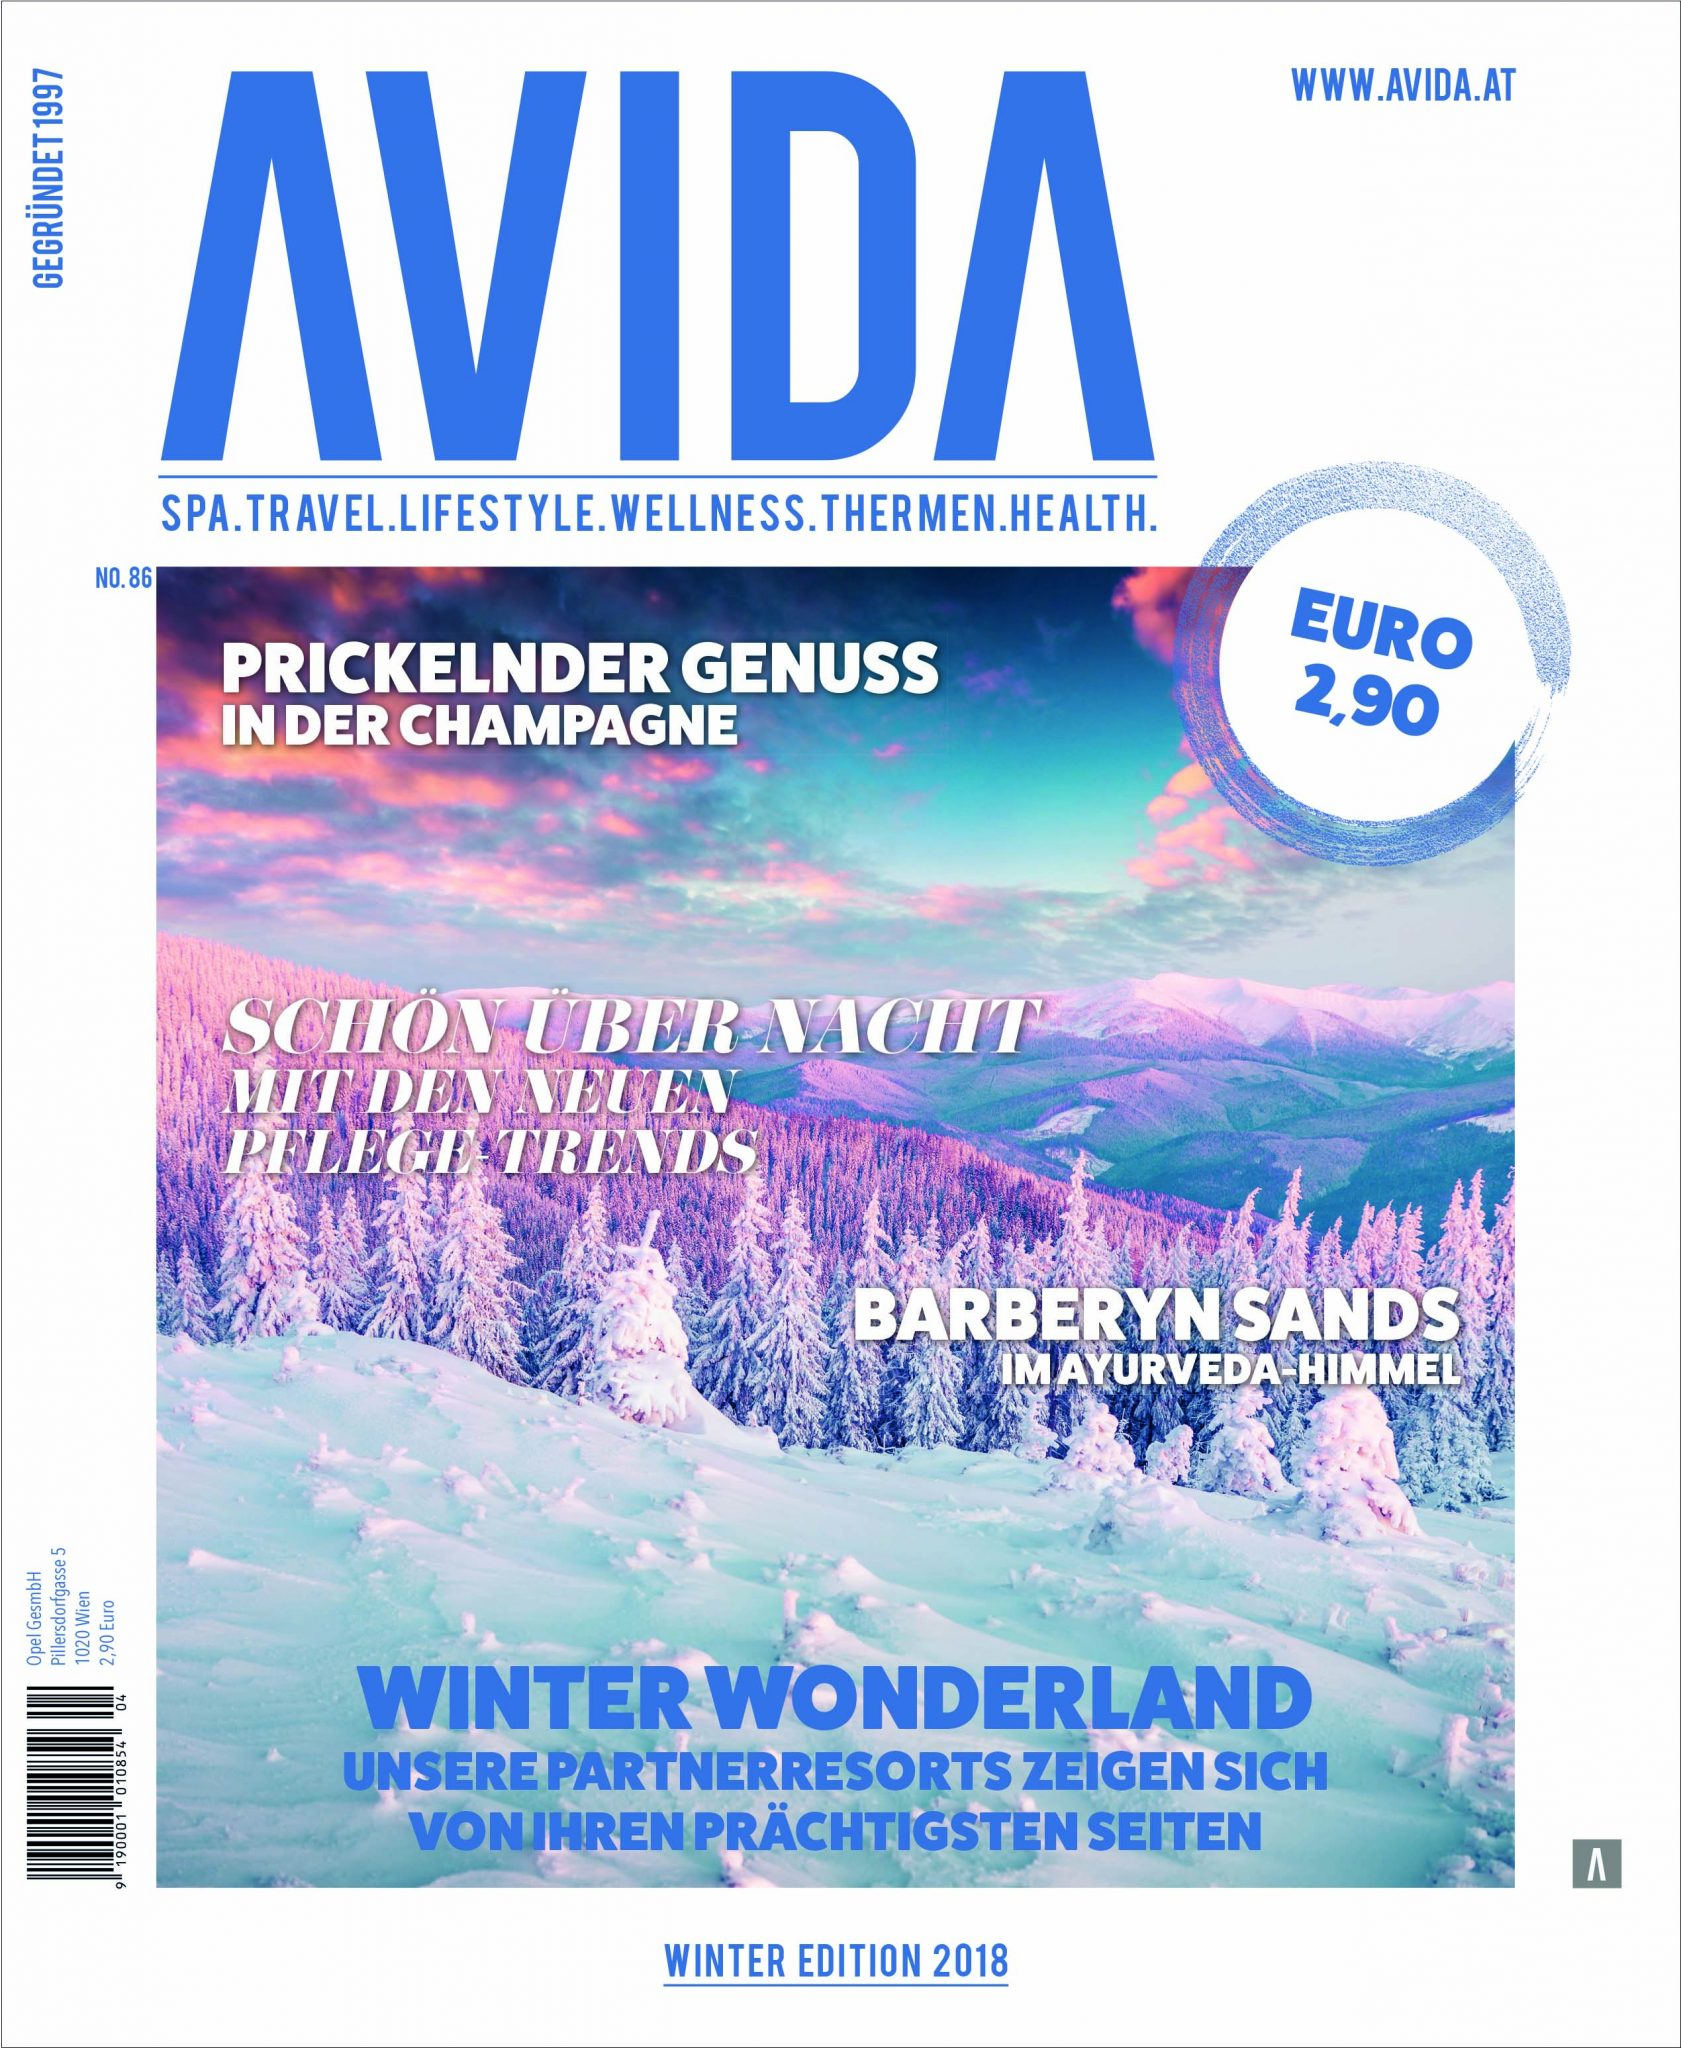 cover4.18 - AVIDA Magazin